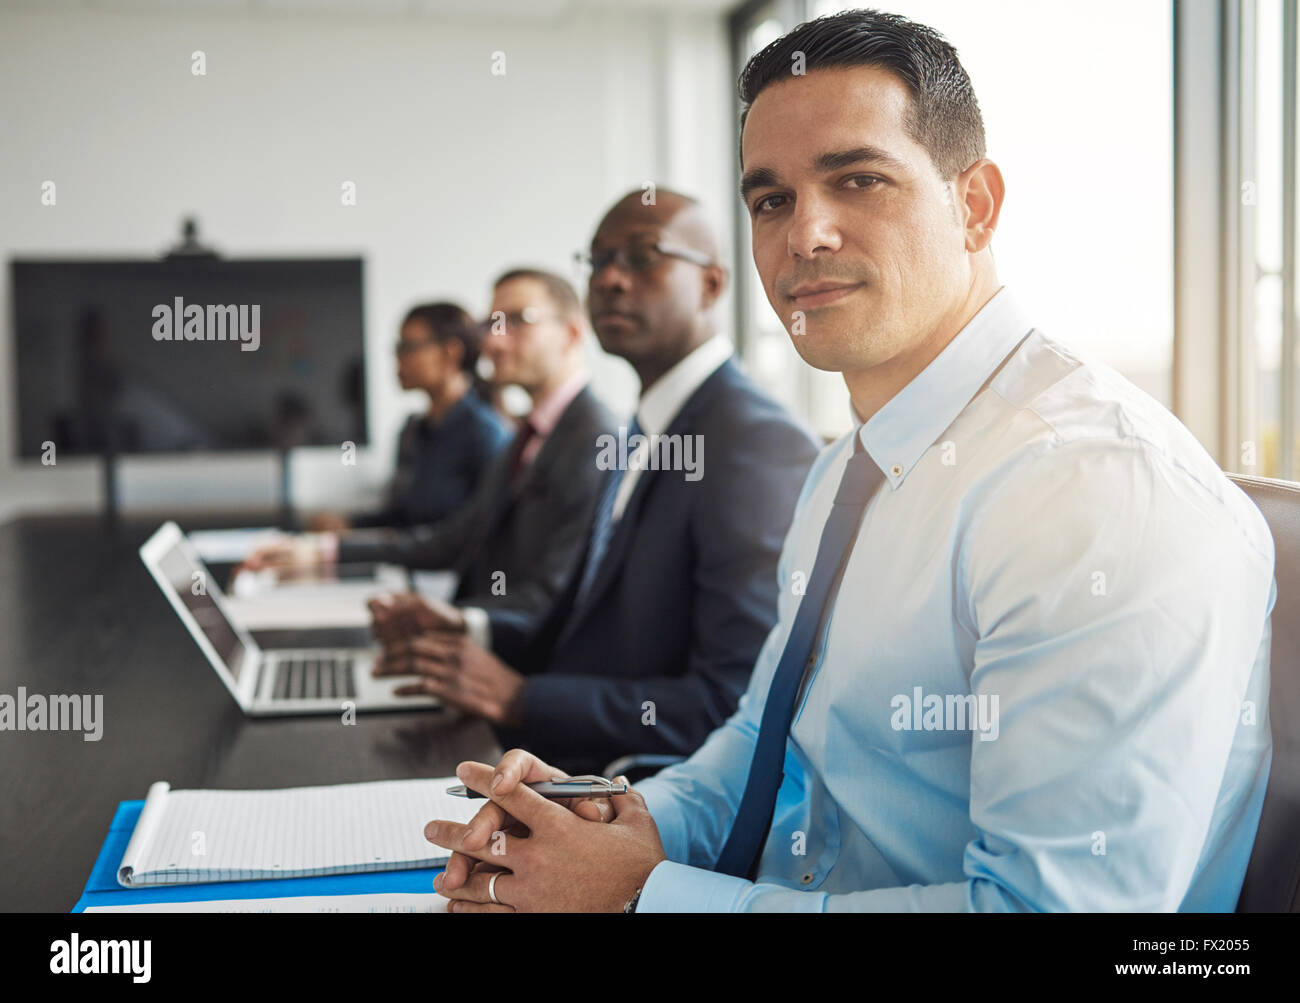 Young Hispanic businessman in a meeting with co-workers at the office sitting at a conference table turning to smile - Stock Image